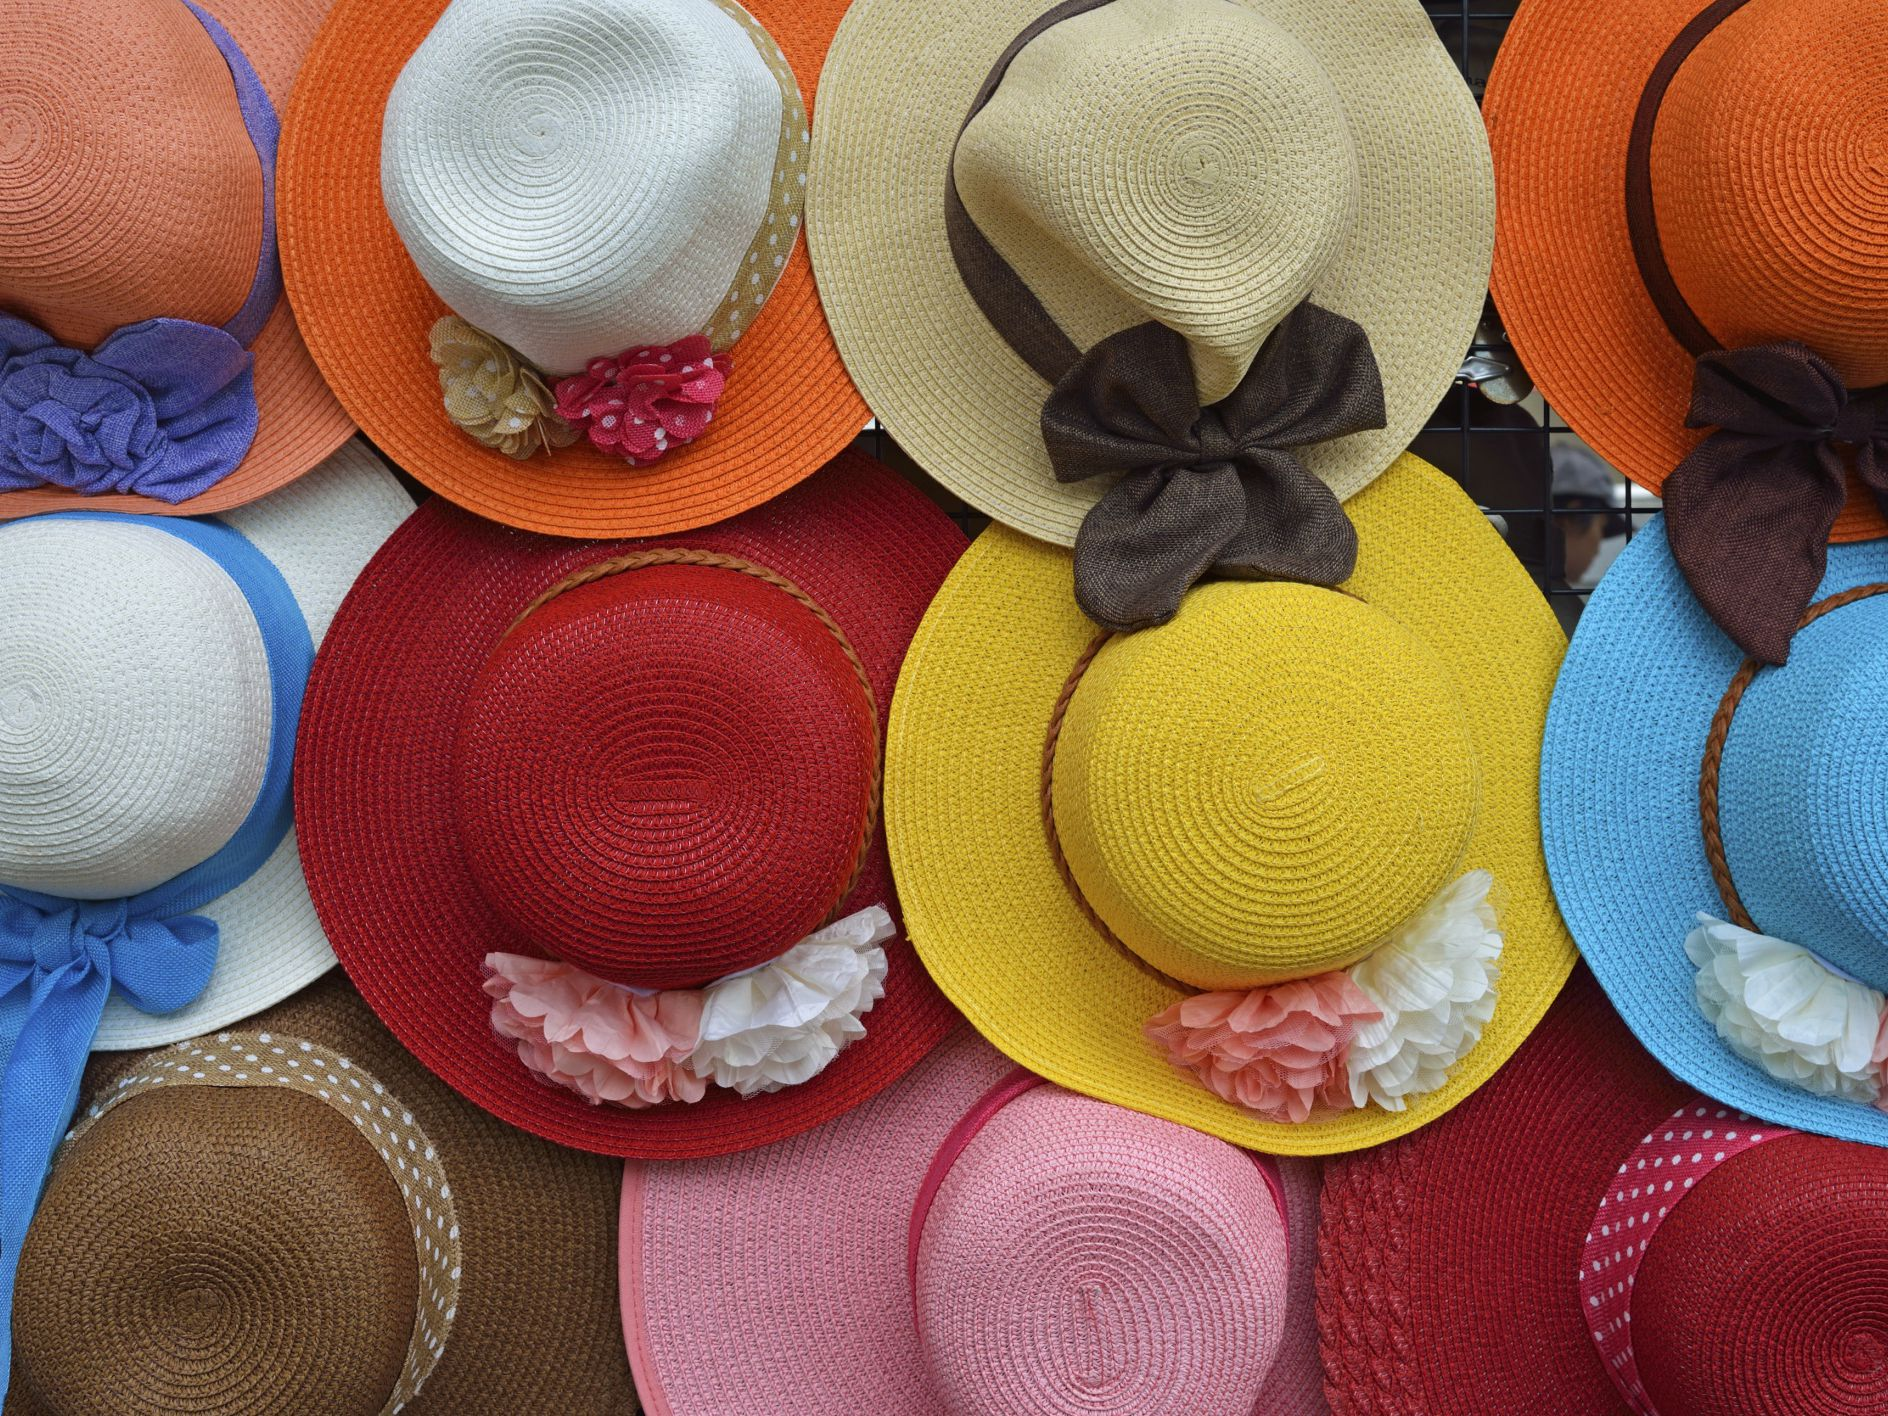 a9b7a1c4be1f4 How to Make Your Own Kentucky Derby Hat